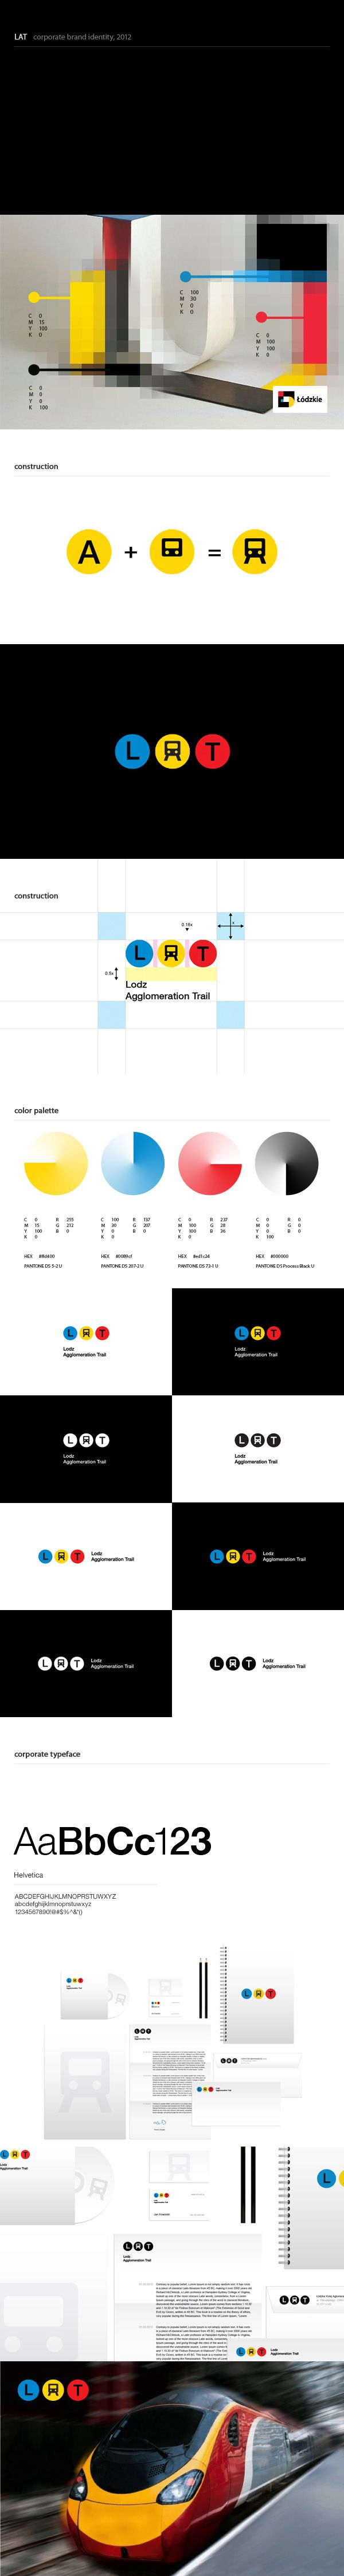 Logo design and Corporate Identity for LAT